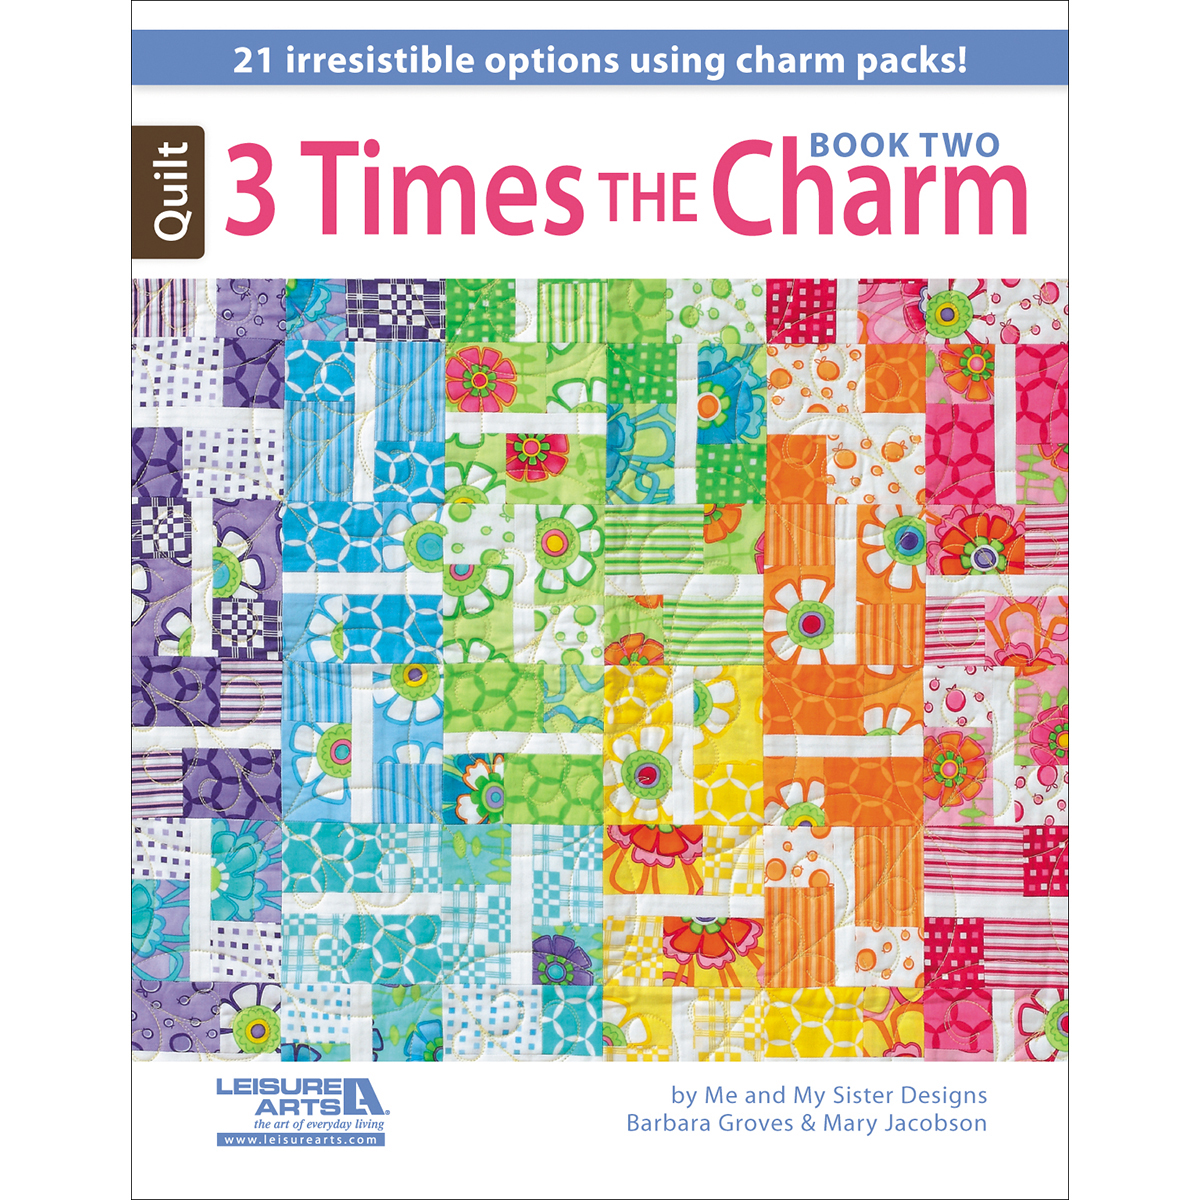 Leisure Arts-3 Times The Charm Book Two